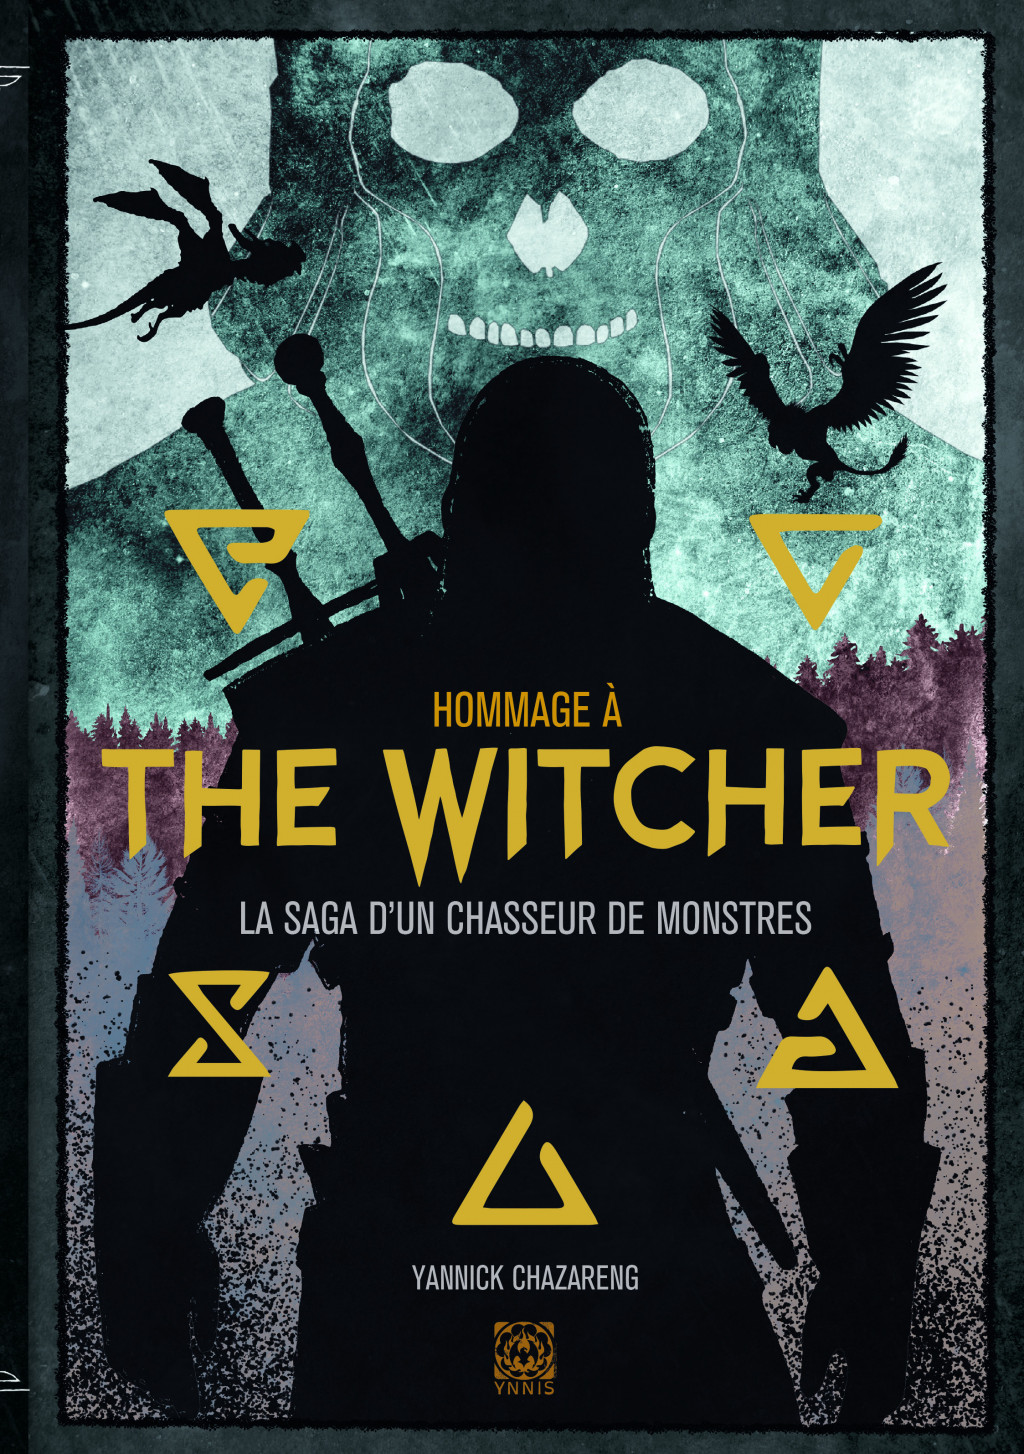 Hommage à The Witcher